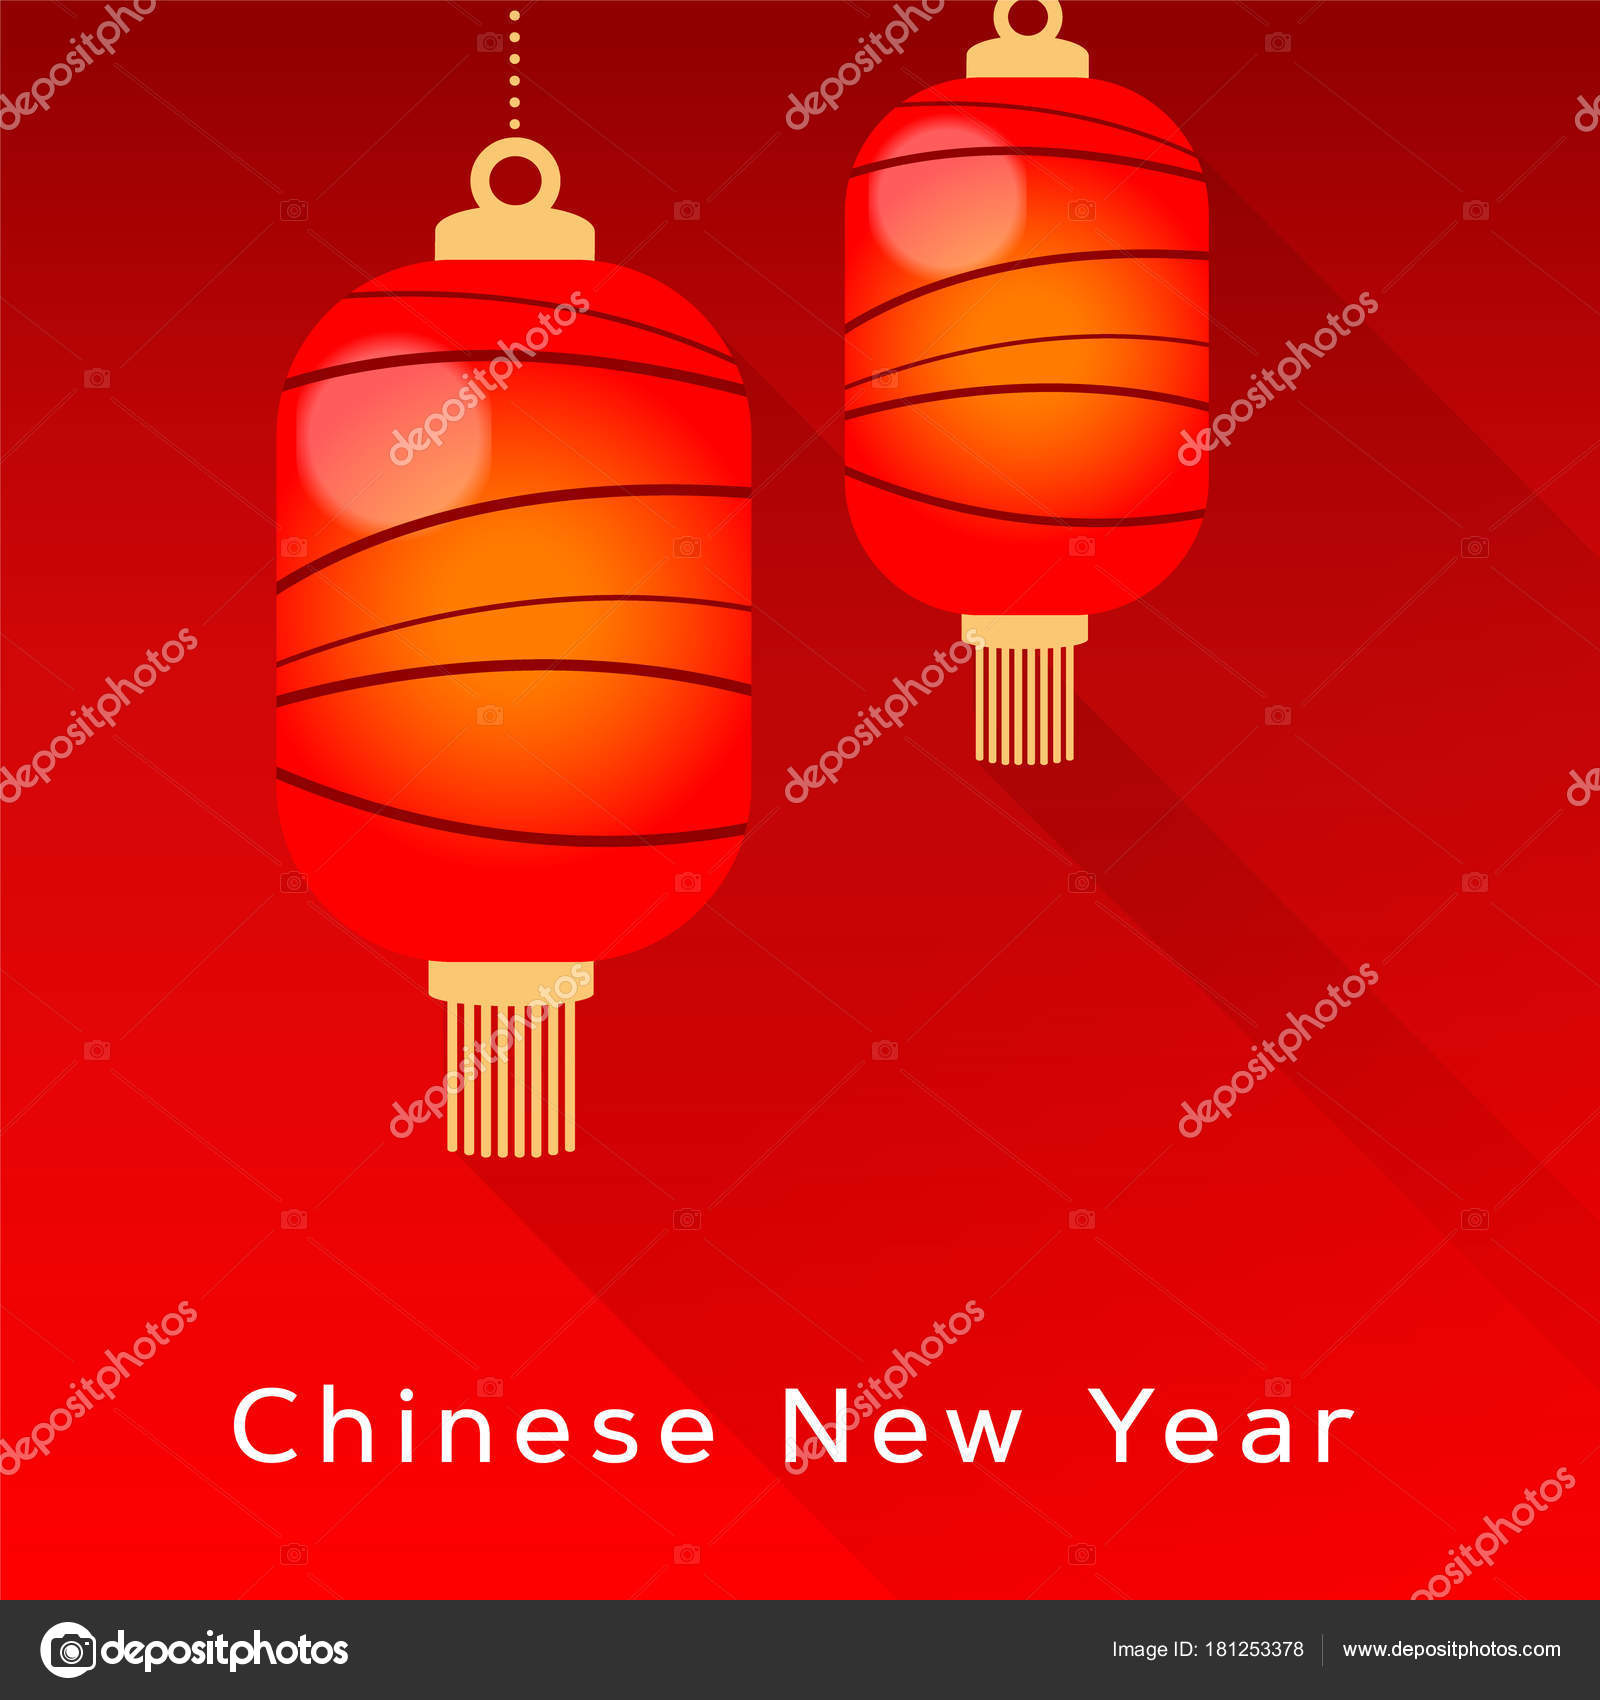 chinese new year greeting card invitation with hanging red lanterns asian party decoration vector illustration background modern design with long